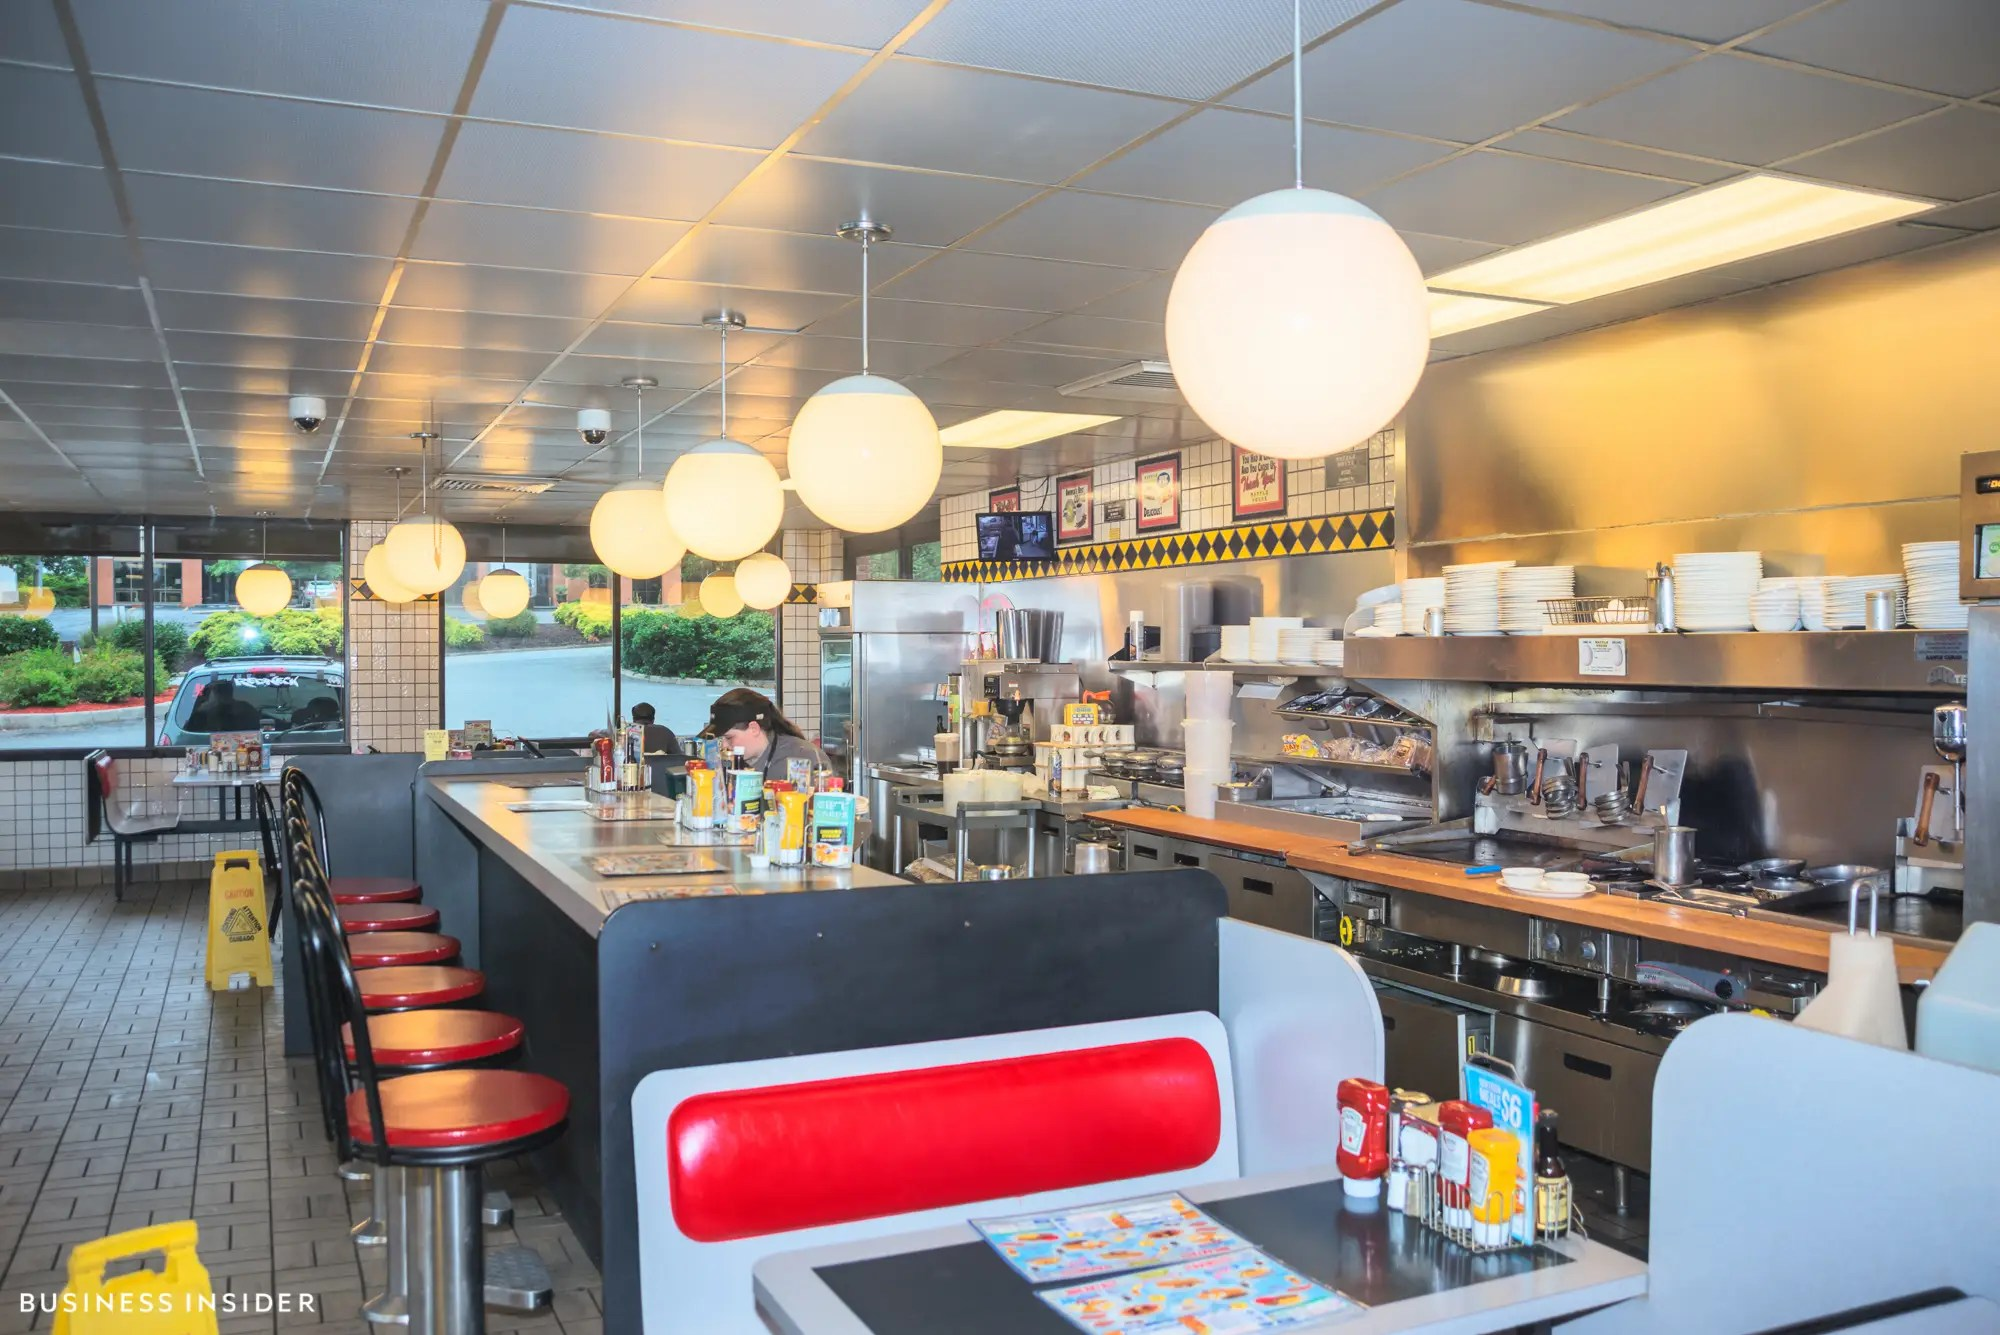 We could hear the food sizzling on the griddle as we cozied into our booth. We could have even hopped the side and poured the waffle batter ourselves — our waitress didn't have to leave the kitchen to take our order and deliver it steaming hot.